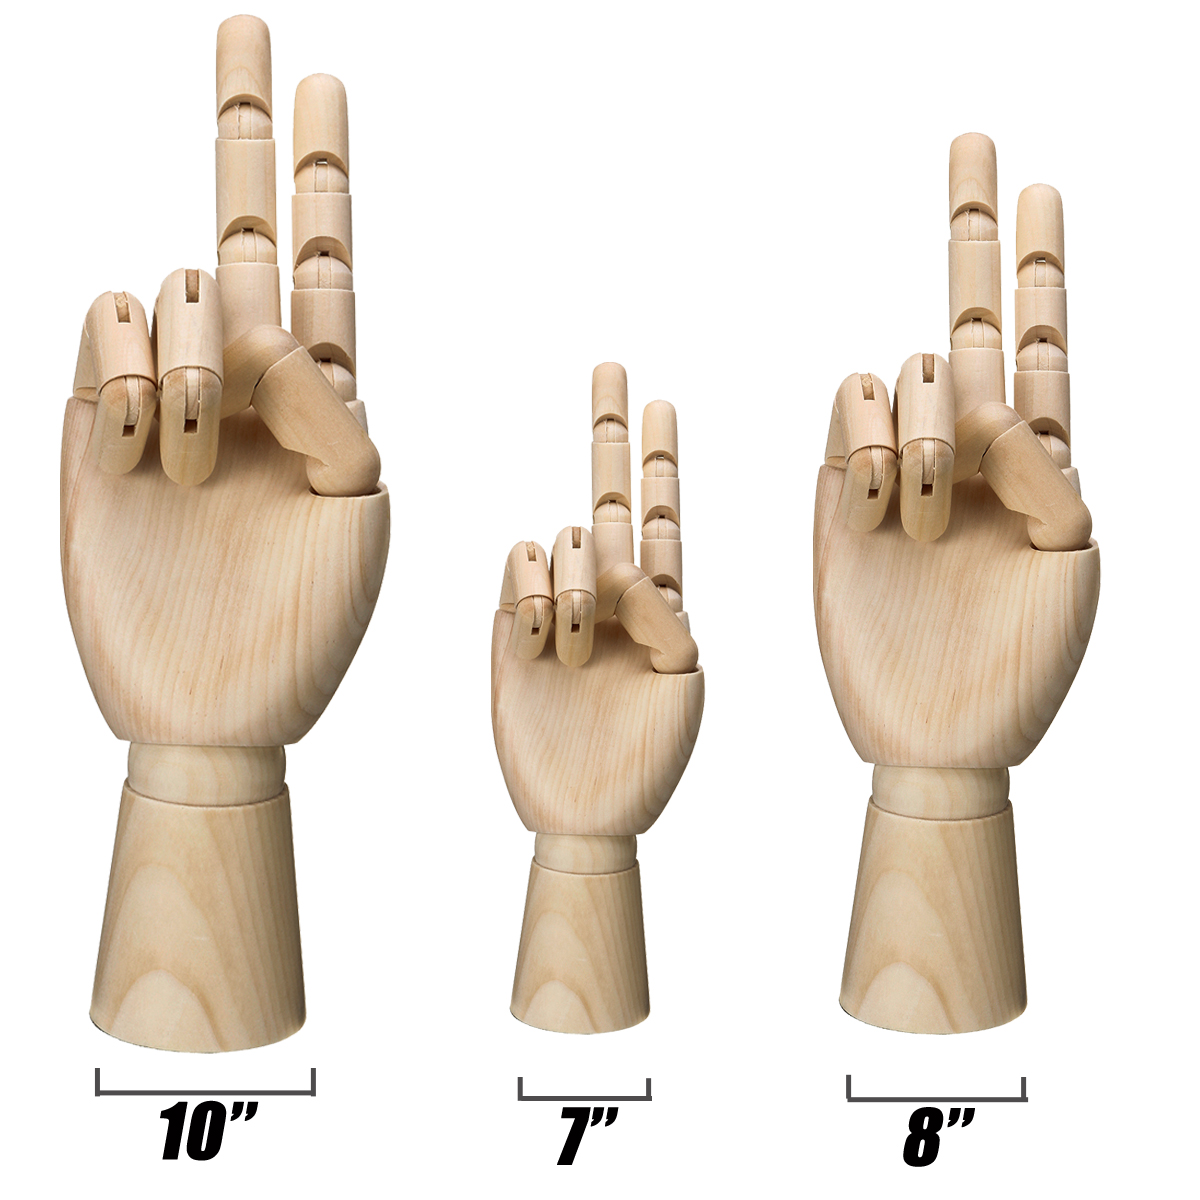 7/8/10/12 Inch Wooden Hand Body Artist Medical Model Flexible Jointed Wood Sculpture DIY Education